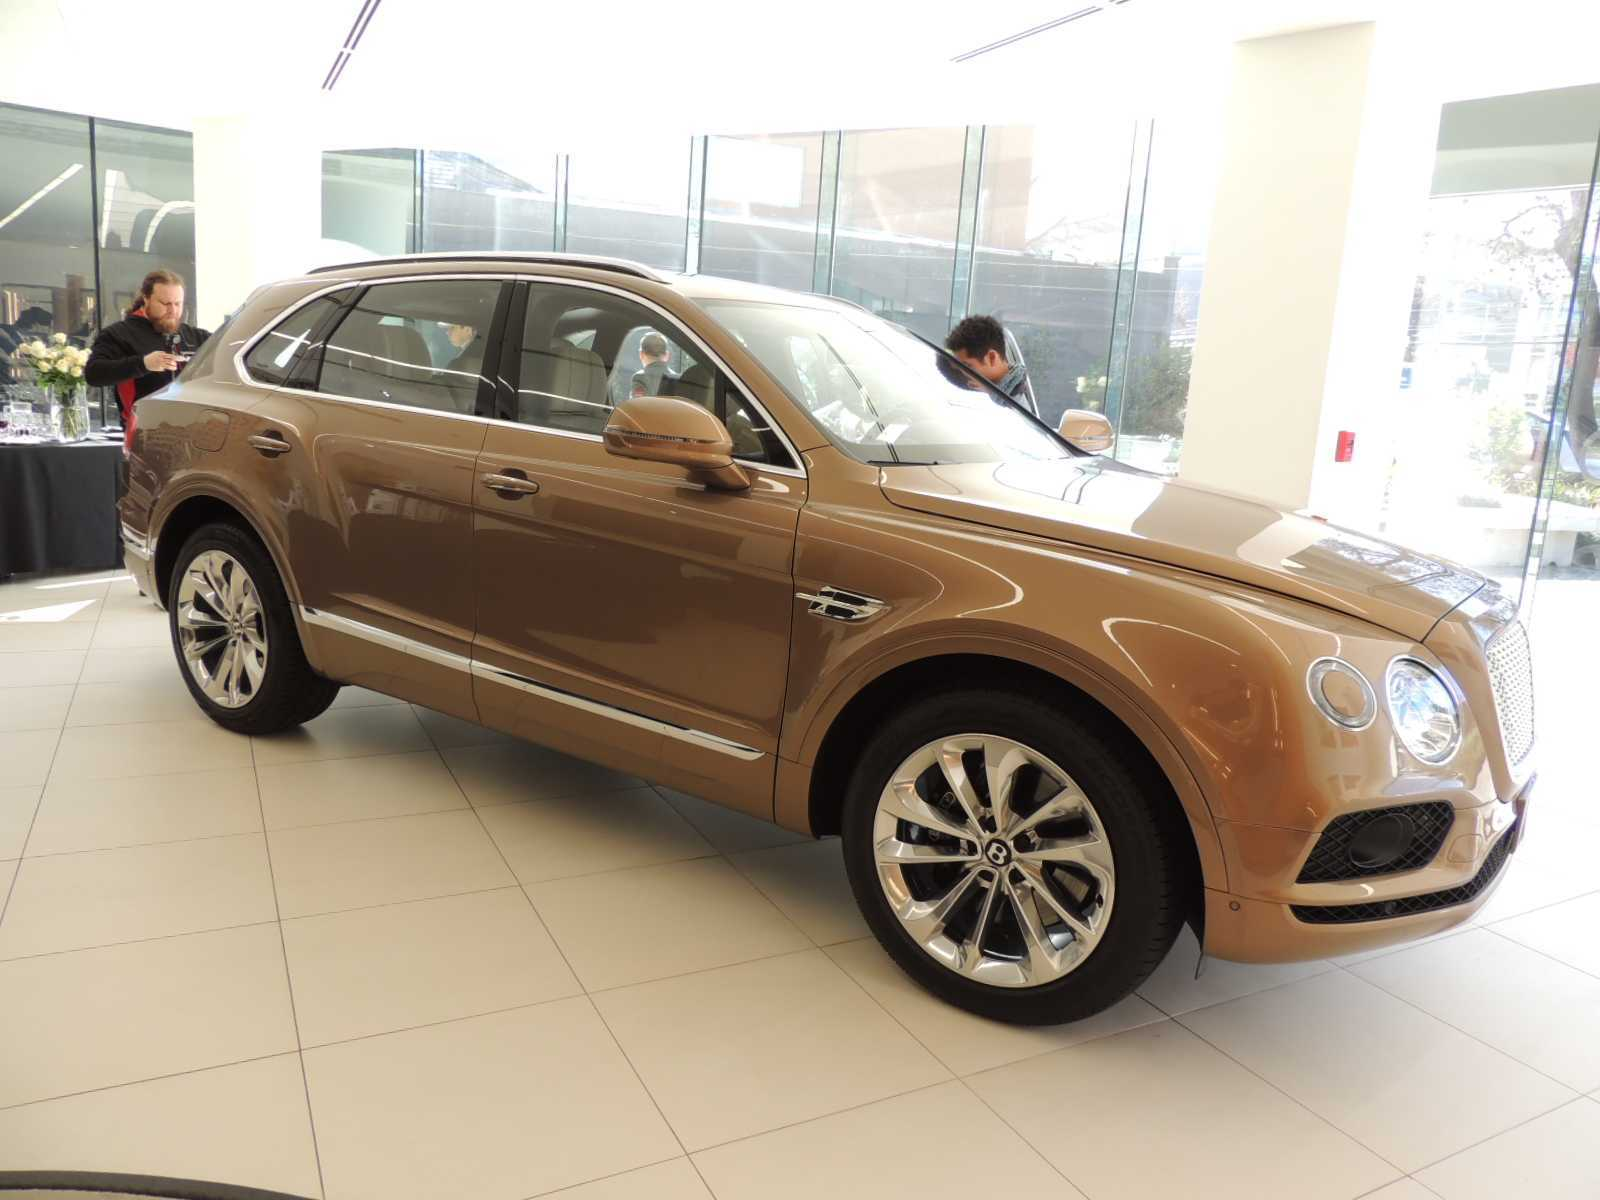 Bentley Bentayga fotos Rutamotor julio 2016 (39)